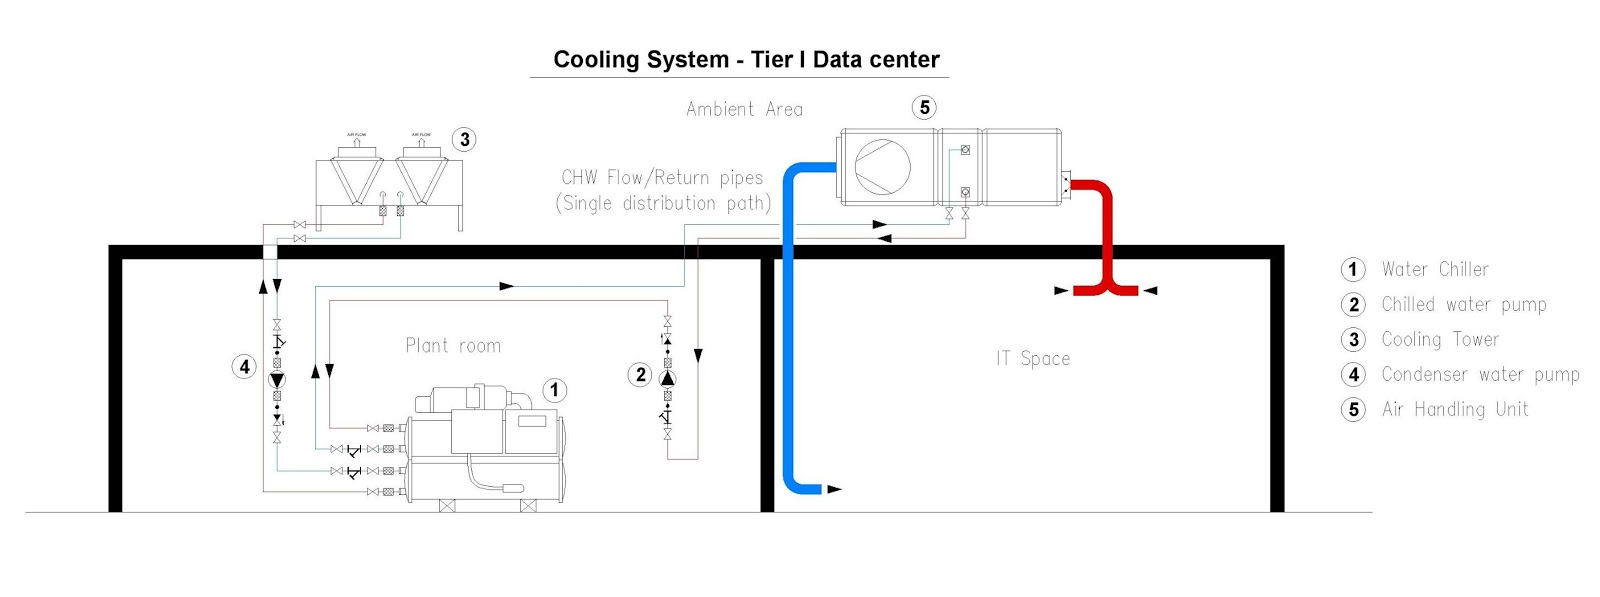 hight resolution of 03 a tier i water system air handling unit contain single or more running capacity components this includes a combination of water chiller